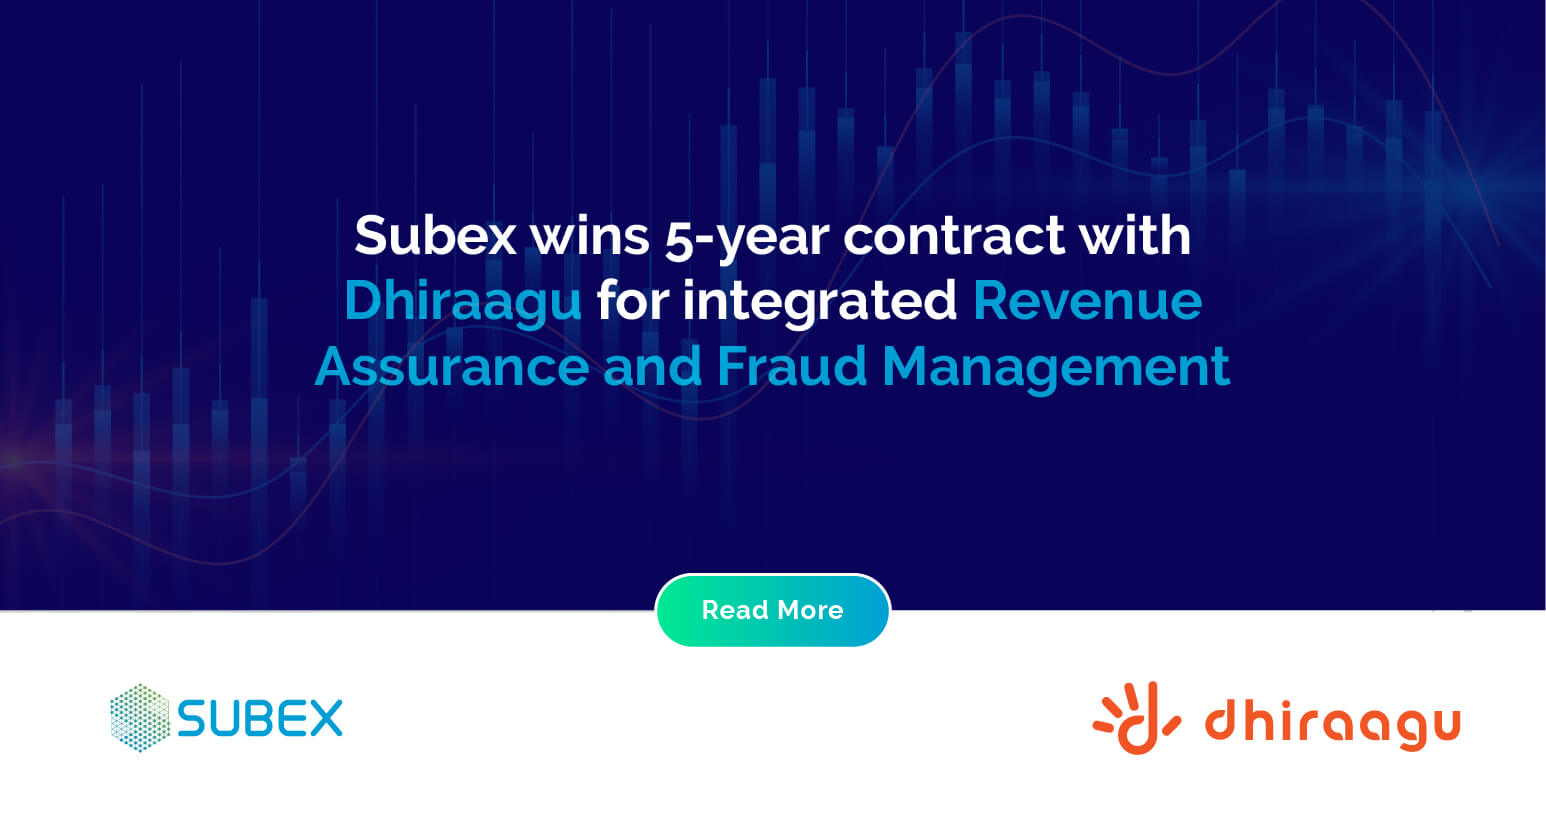 Subex wins 5-year contract with Dhiraagu for integrated Revenue Assurance and Fraud Management